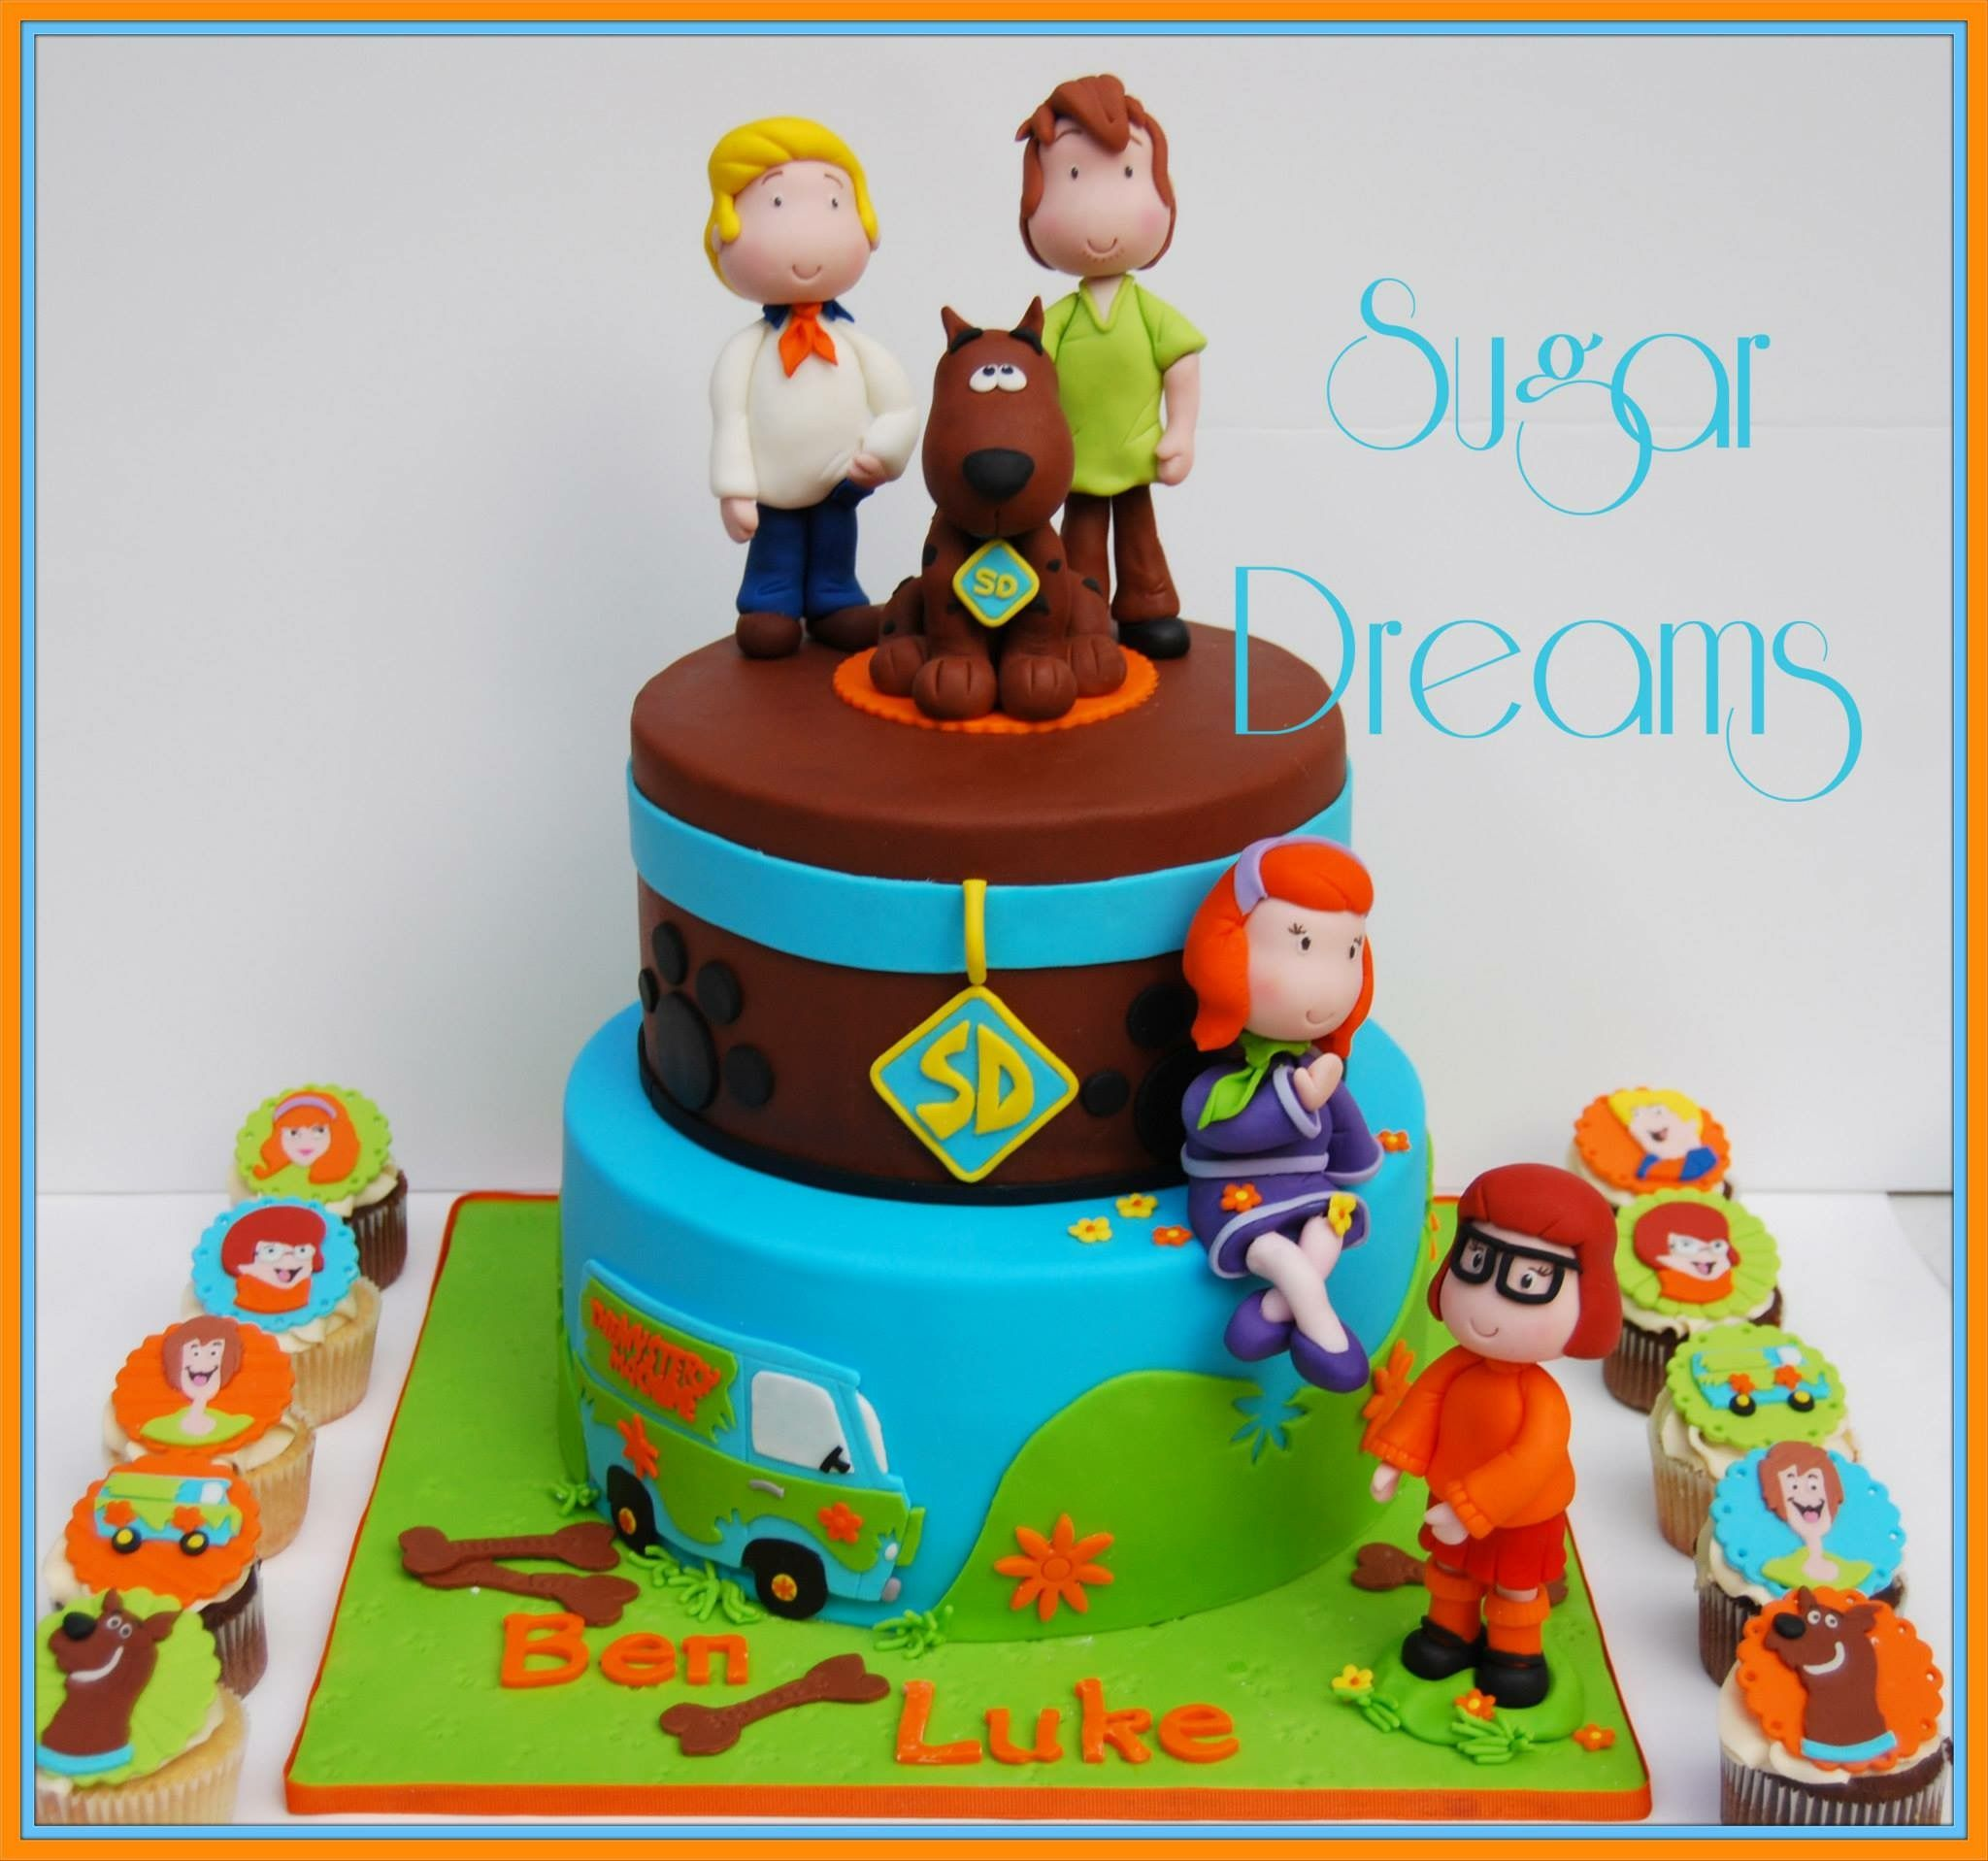 Pin by abby zimmerman on scooby doo scooby doo cake